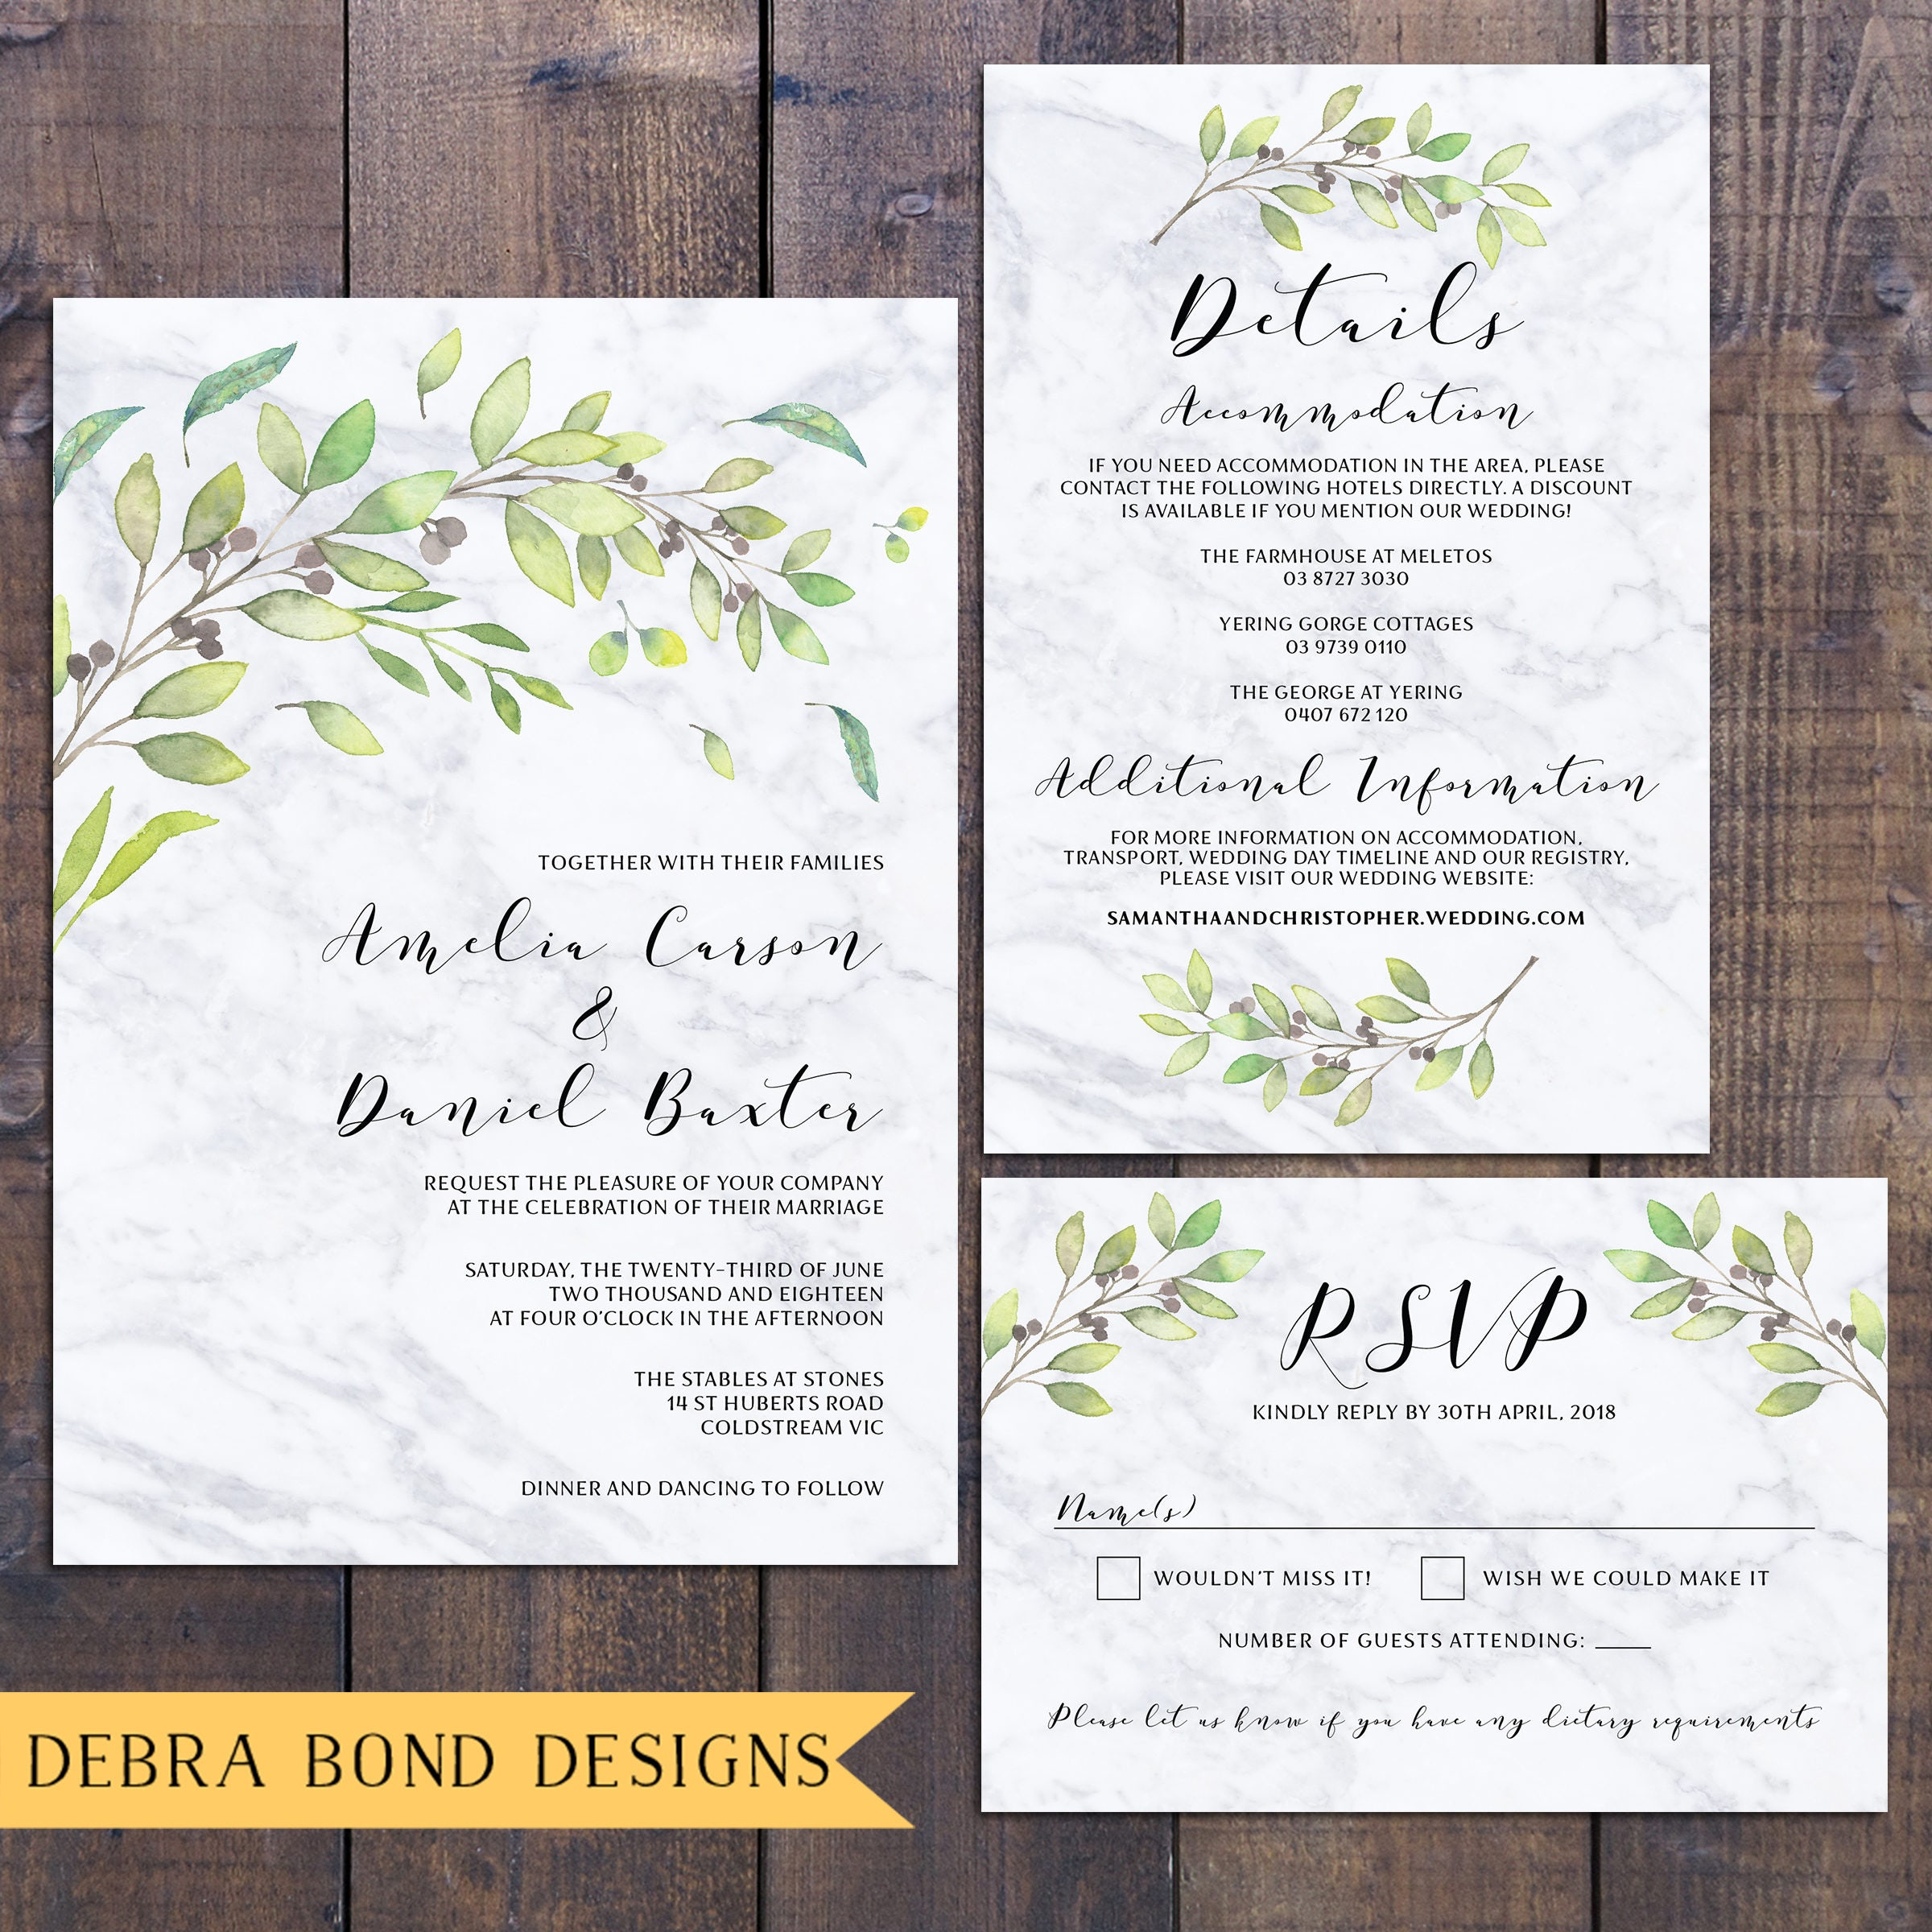 wedding invites and rsvp cards - Onwe.bioinnovate.co